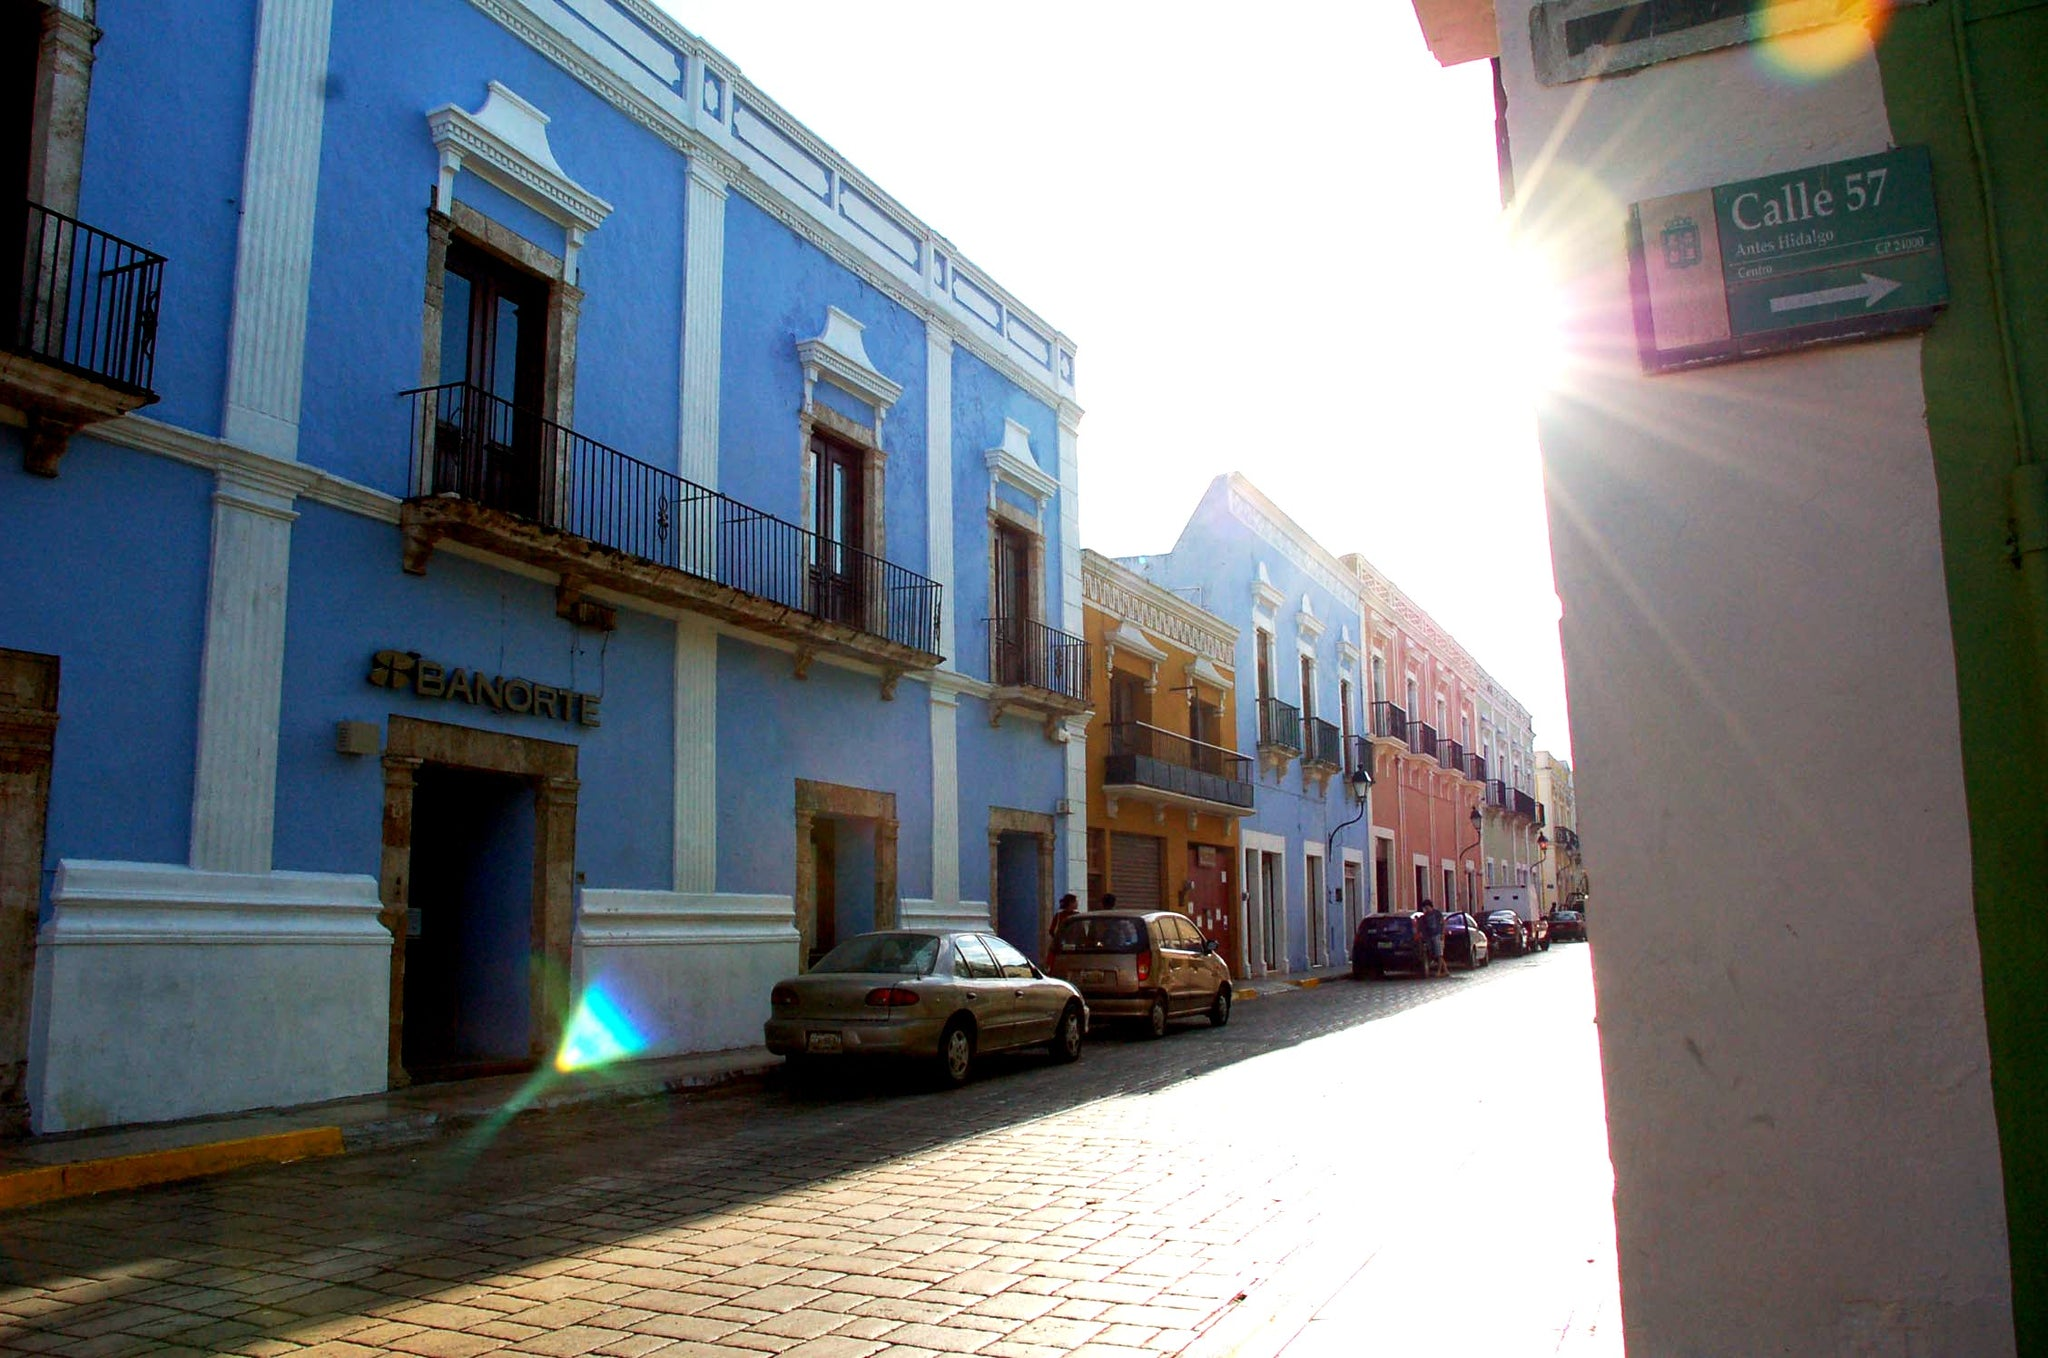 Campeche Mexico Yucatan Peninsula - Cobblestone streets lined with Colorful Colonial Era house and buildings